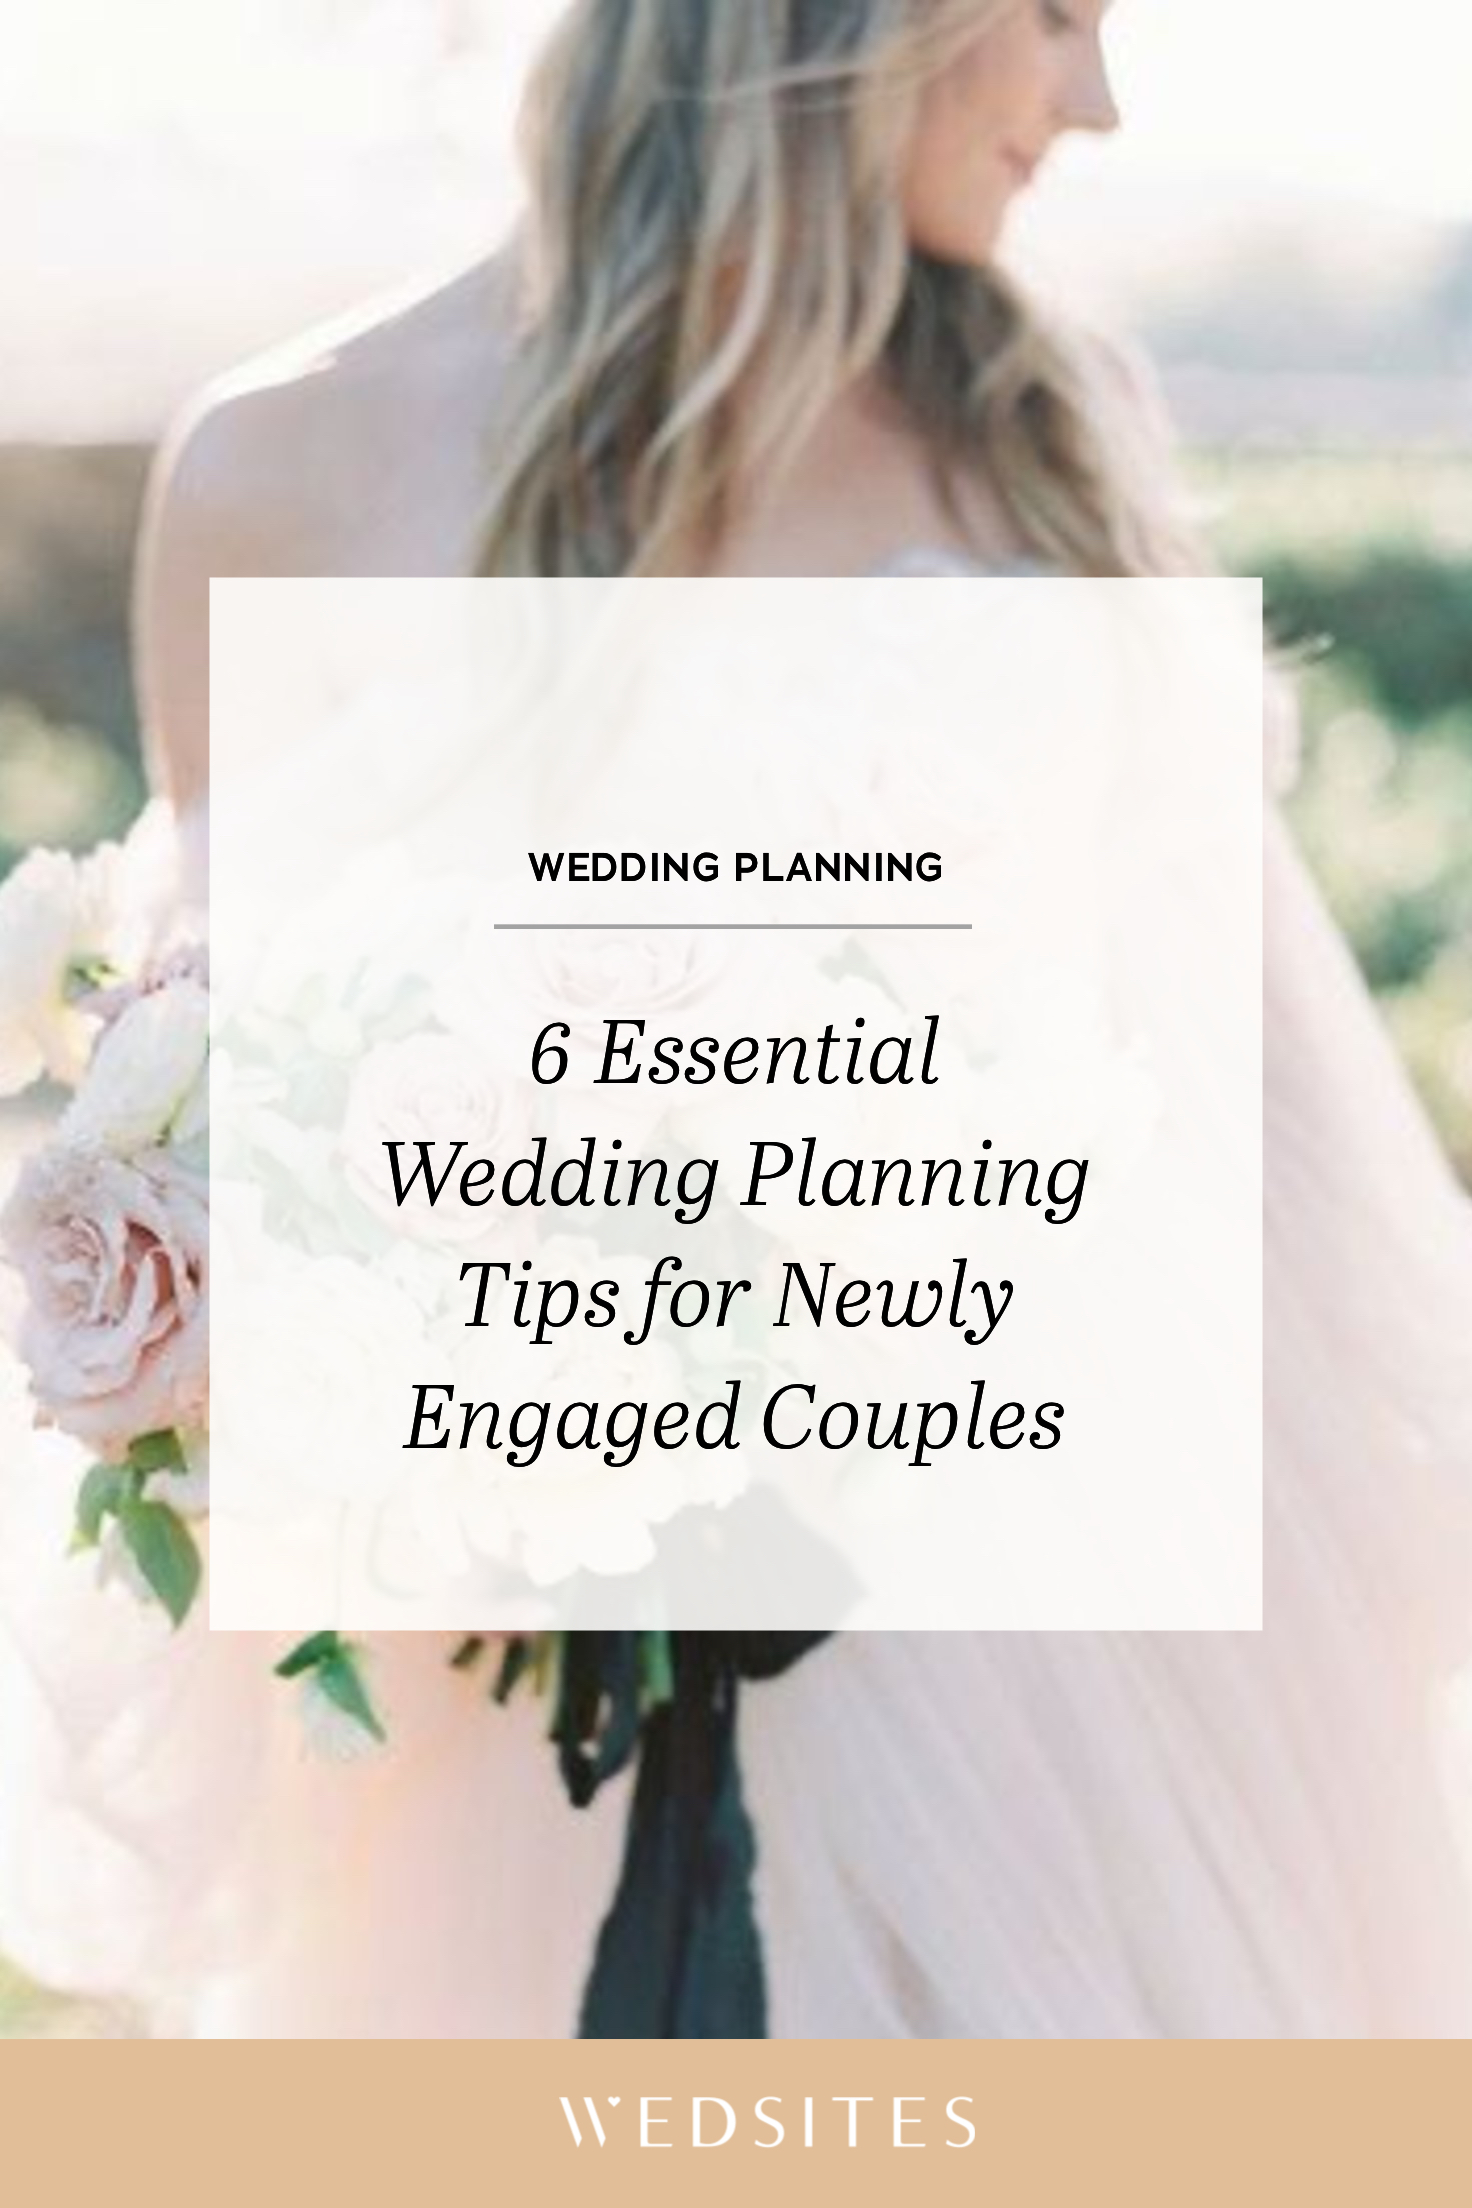 6 Essential Wedding Planning Tips for Newly Engaged Couples